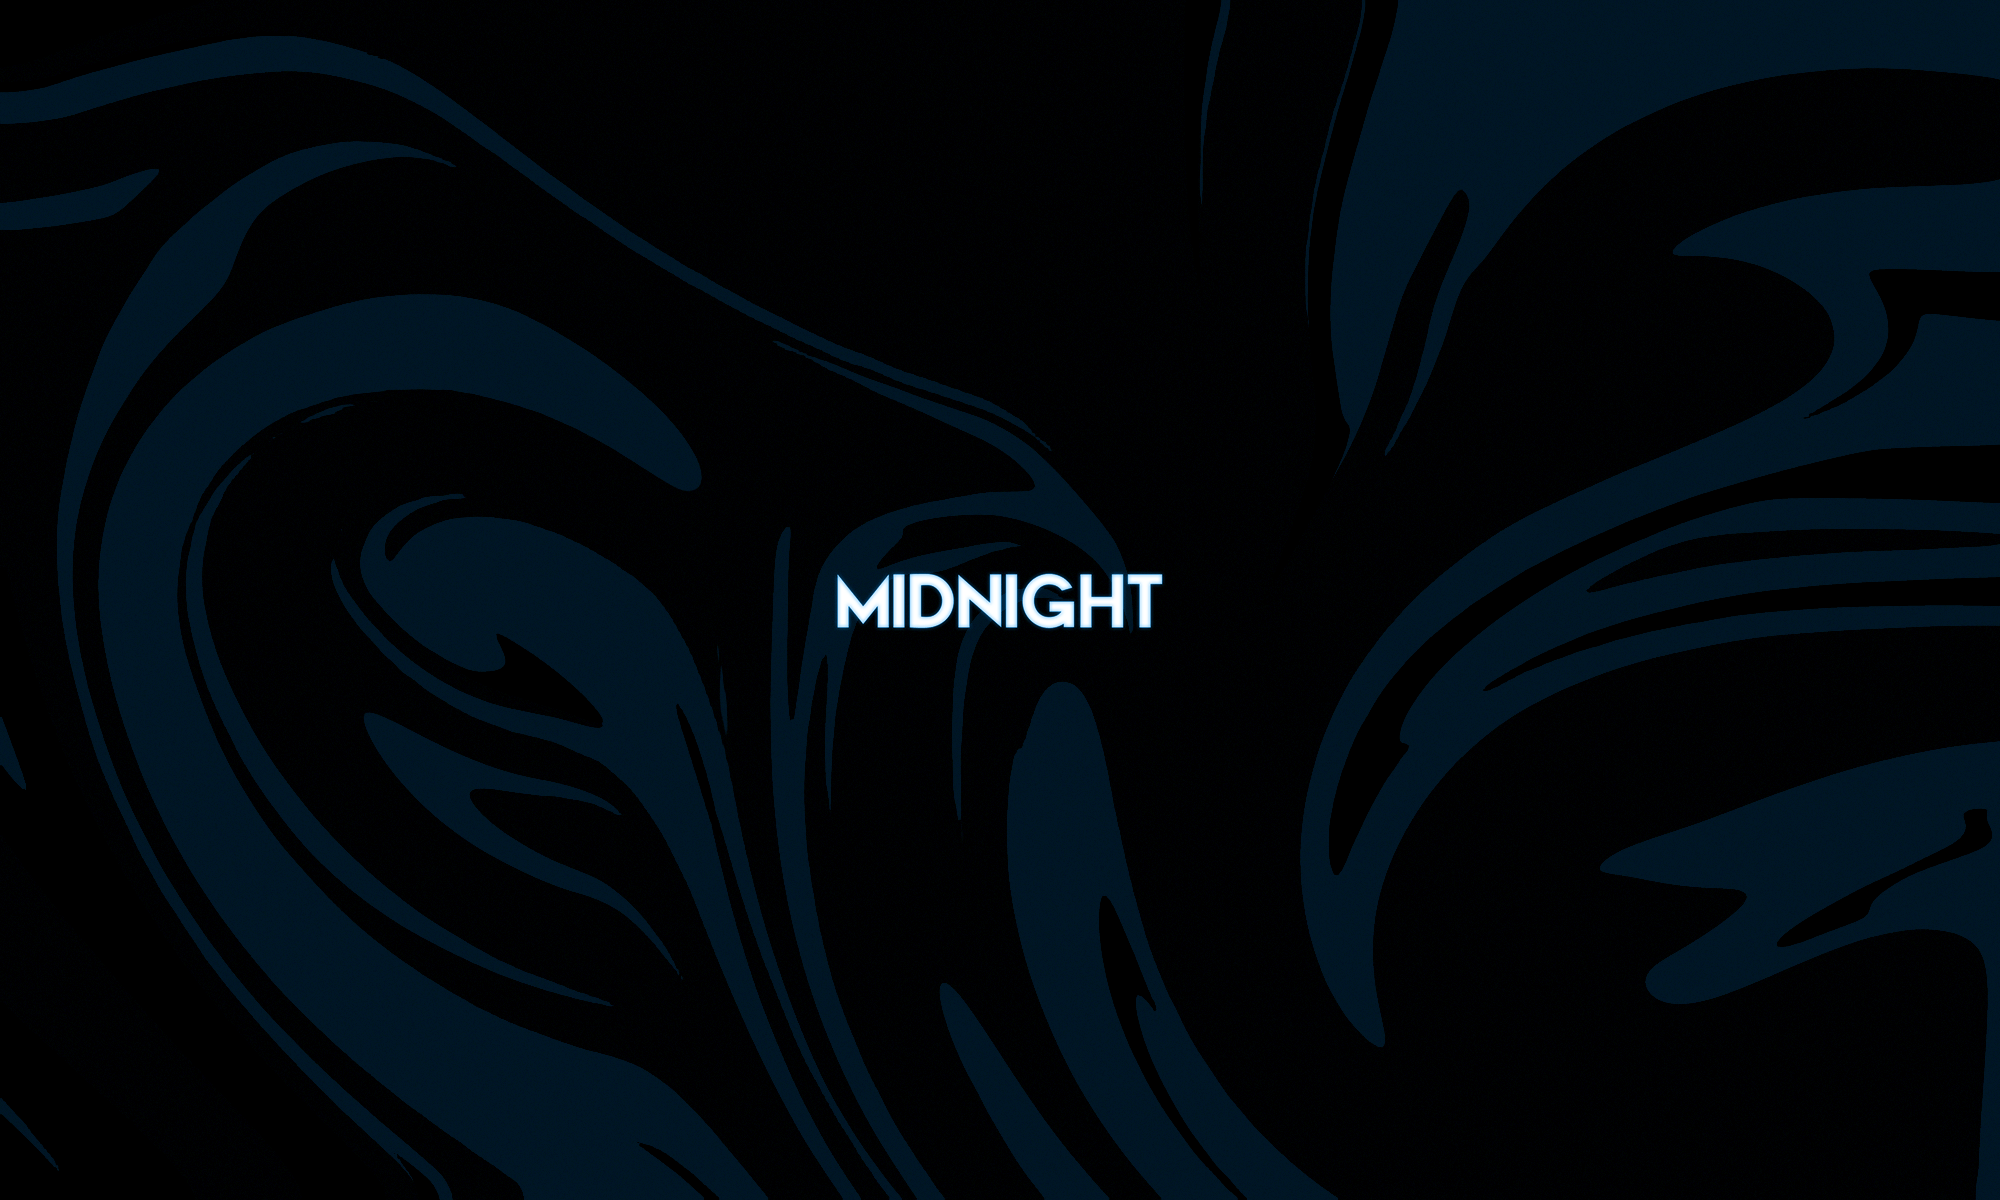 Midnight Sketch Theme